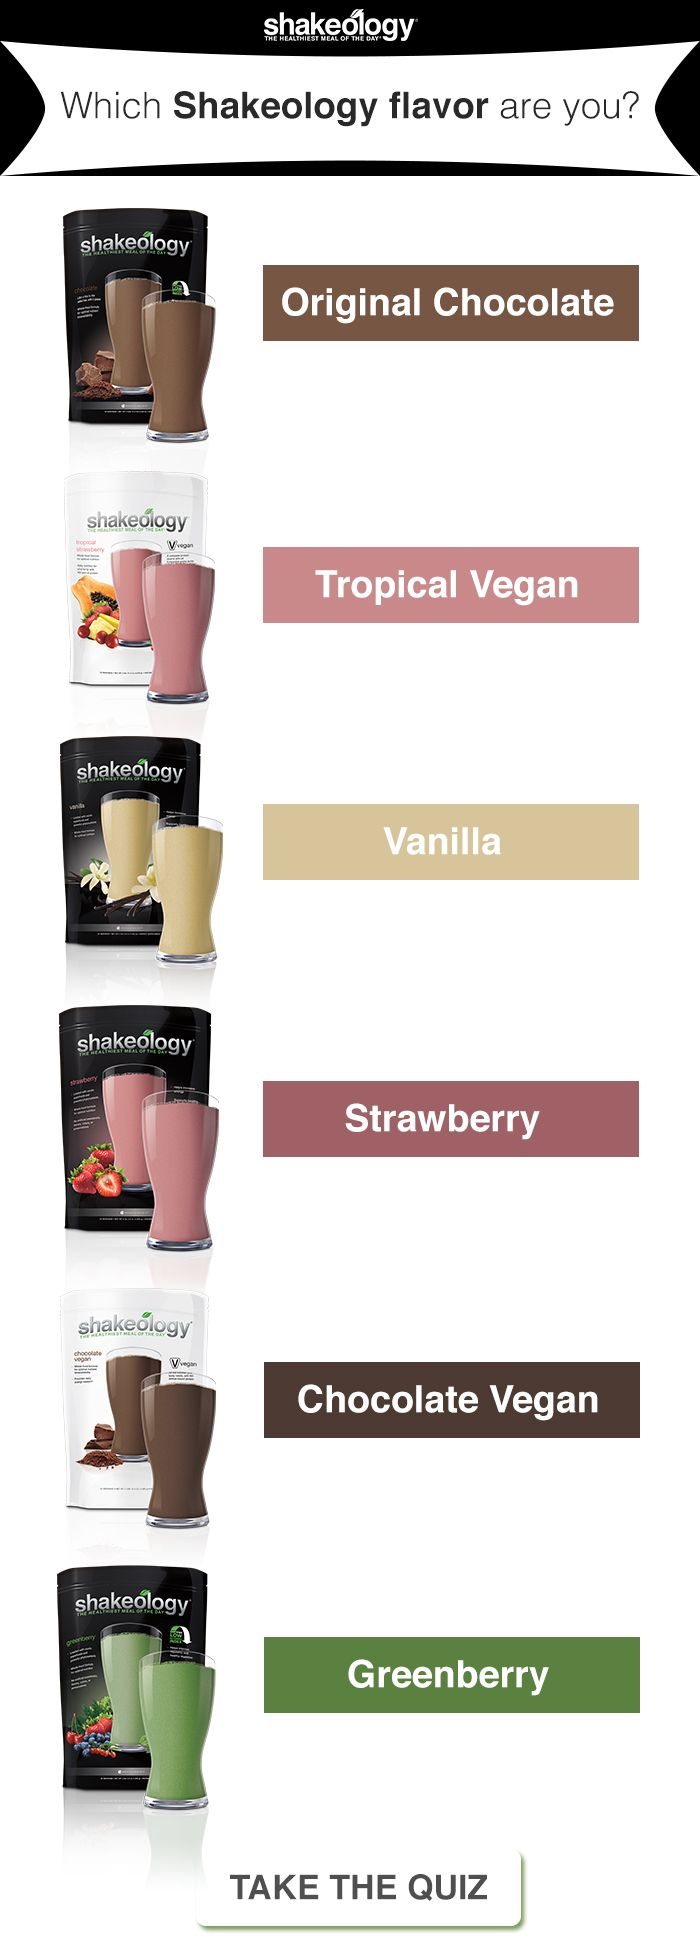 Take this fun quiz to see which flavor you are: http://www.shakeology.com/blogs/2014/07/15/quiz-shakeology-flavor/?TRACKING=SOCIAL_SHK_PI